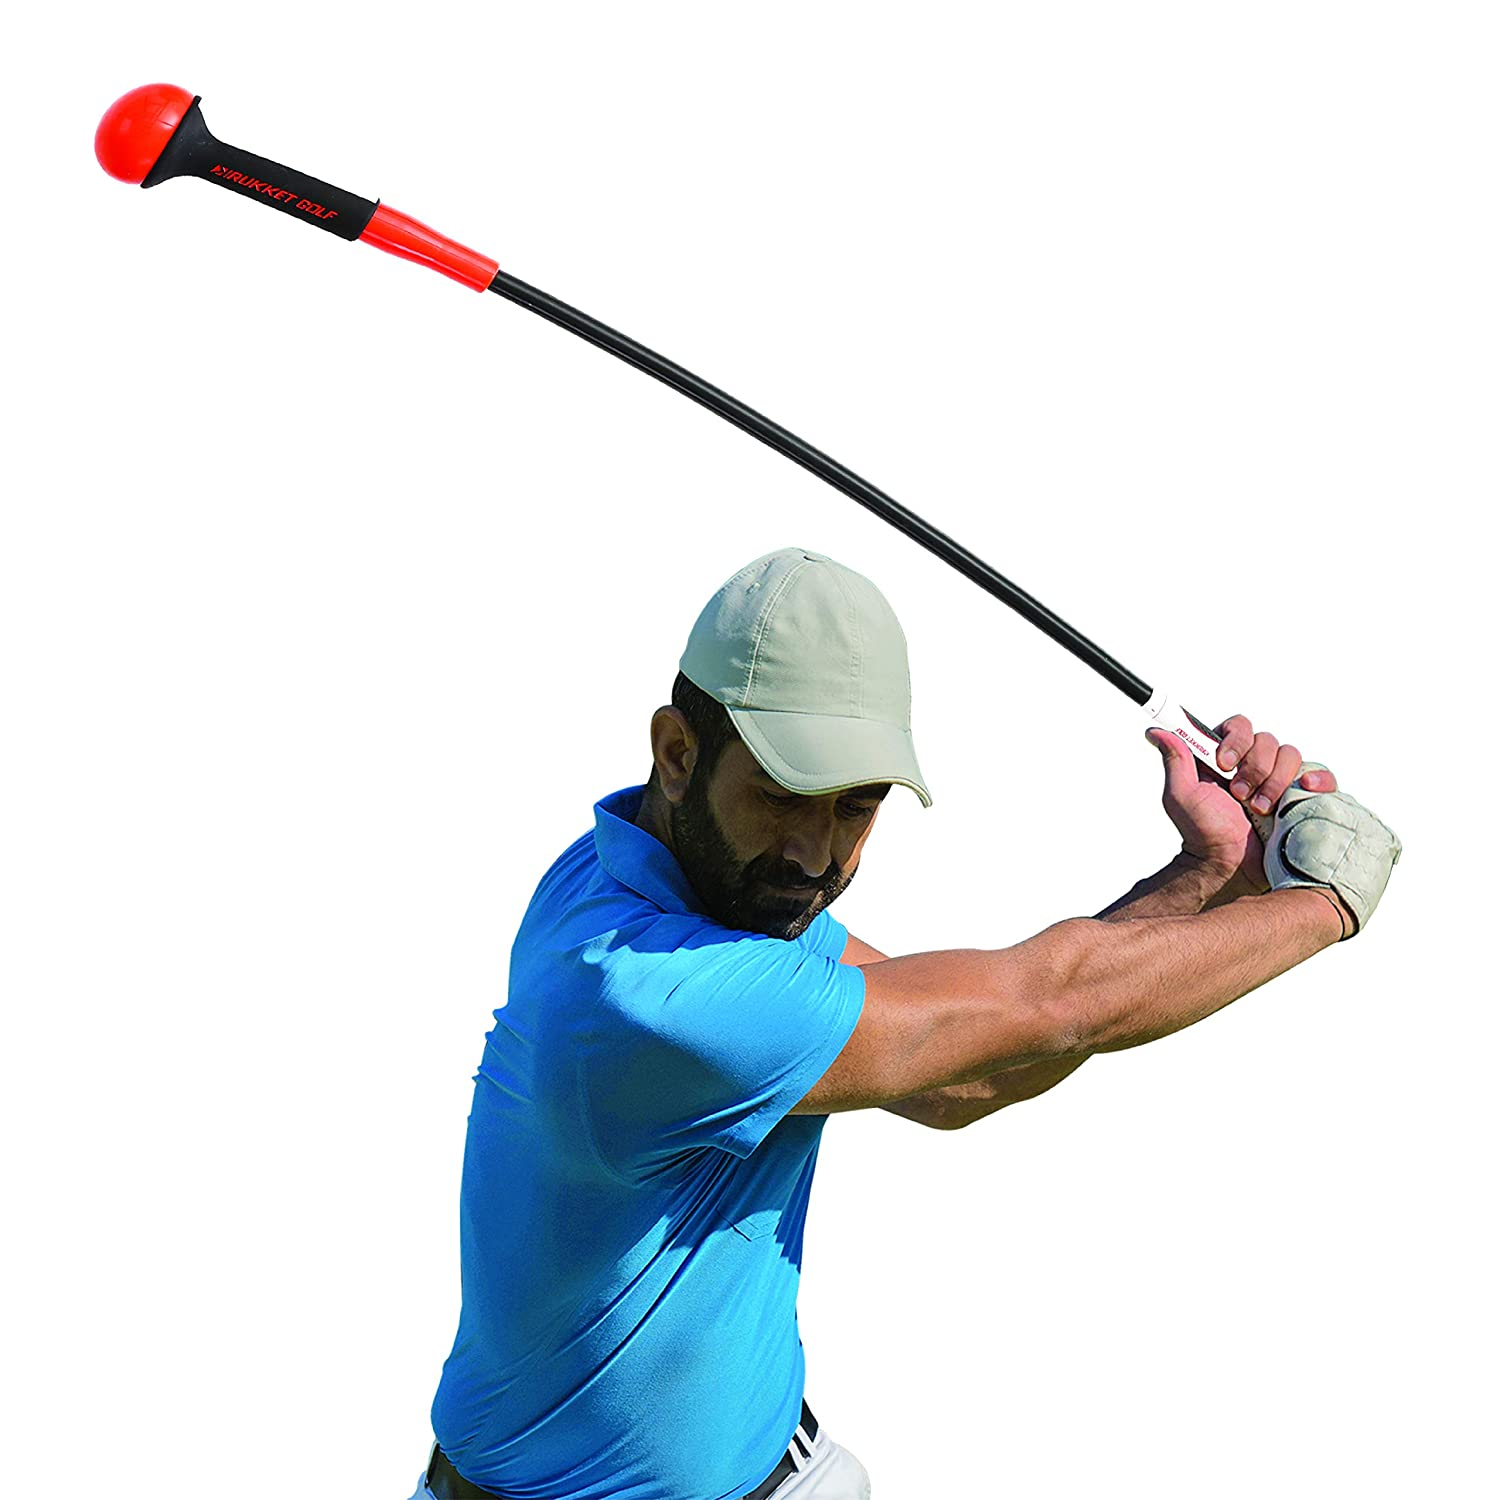 Rukket Golf Swing Trainer Equipment Training Aids For Tempo Speed Practice Flex Tool Whip Club Weighted Warm Up Stick Wrist Aid Impact